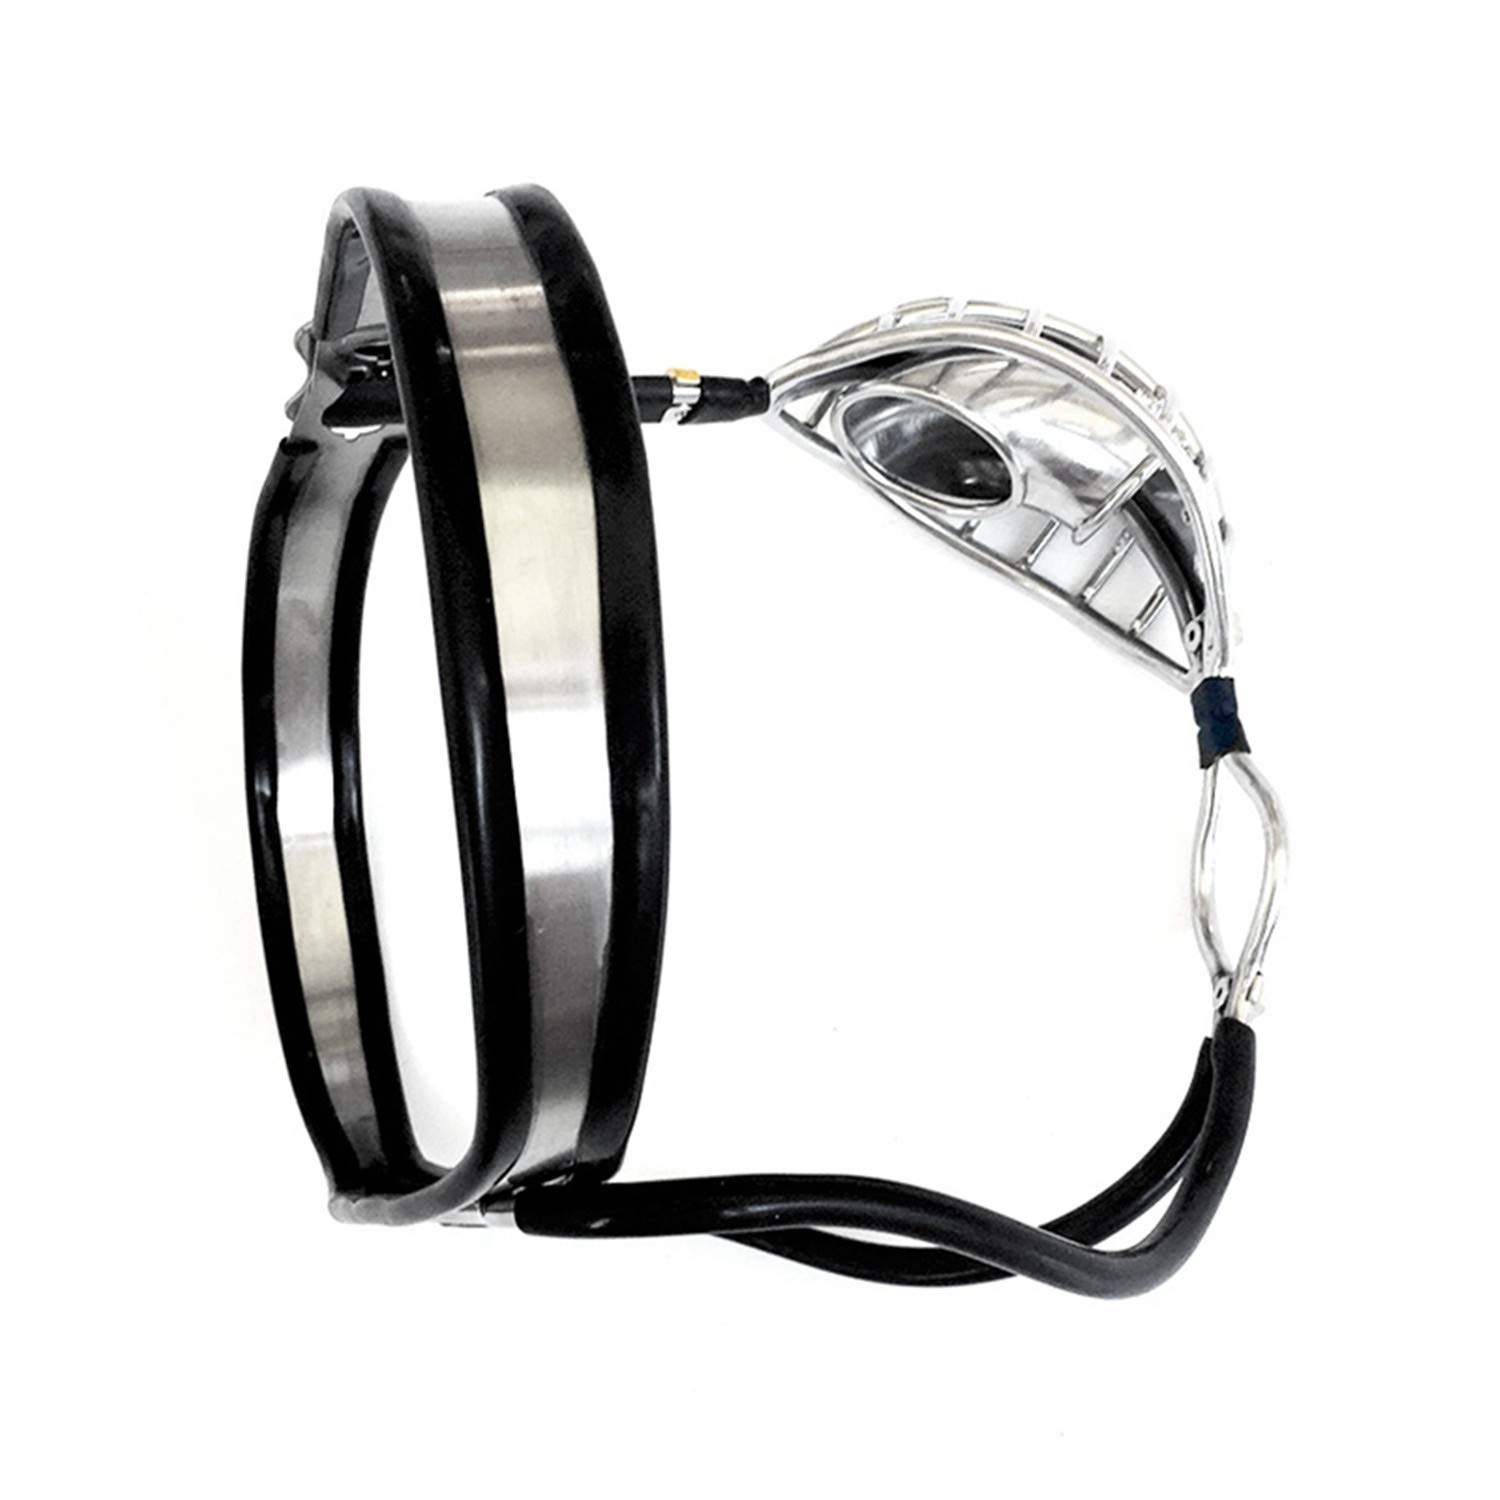 Catheter Sound Male Chastity Chastity Cages Wanyesta Belt Stainless Steel Lock Adult Game CǑck Cage Restraint Device Sěx-Toys For Men by Wanyesta (Image #4)